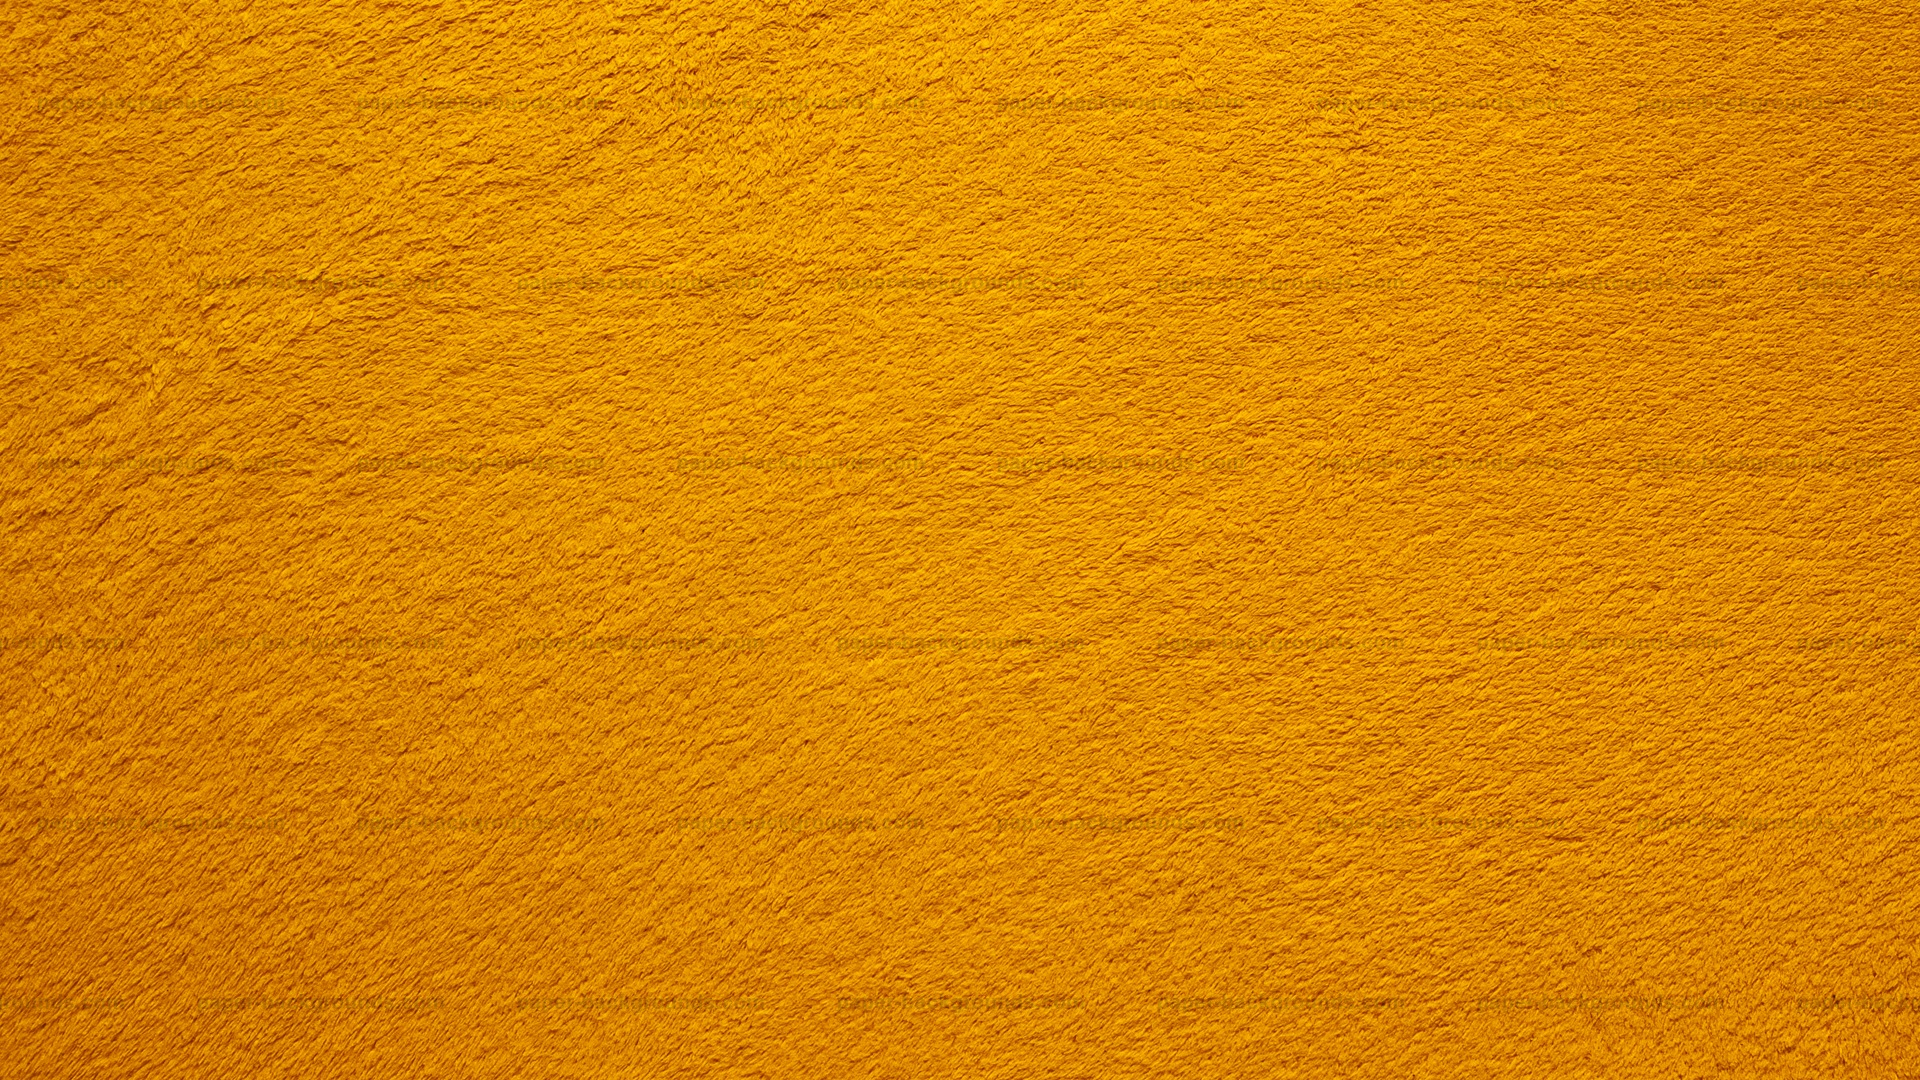 Orange Blanket Fabric Texture Material HD